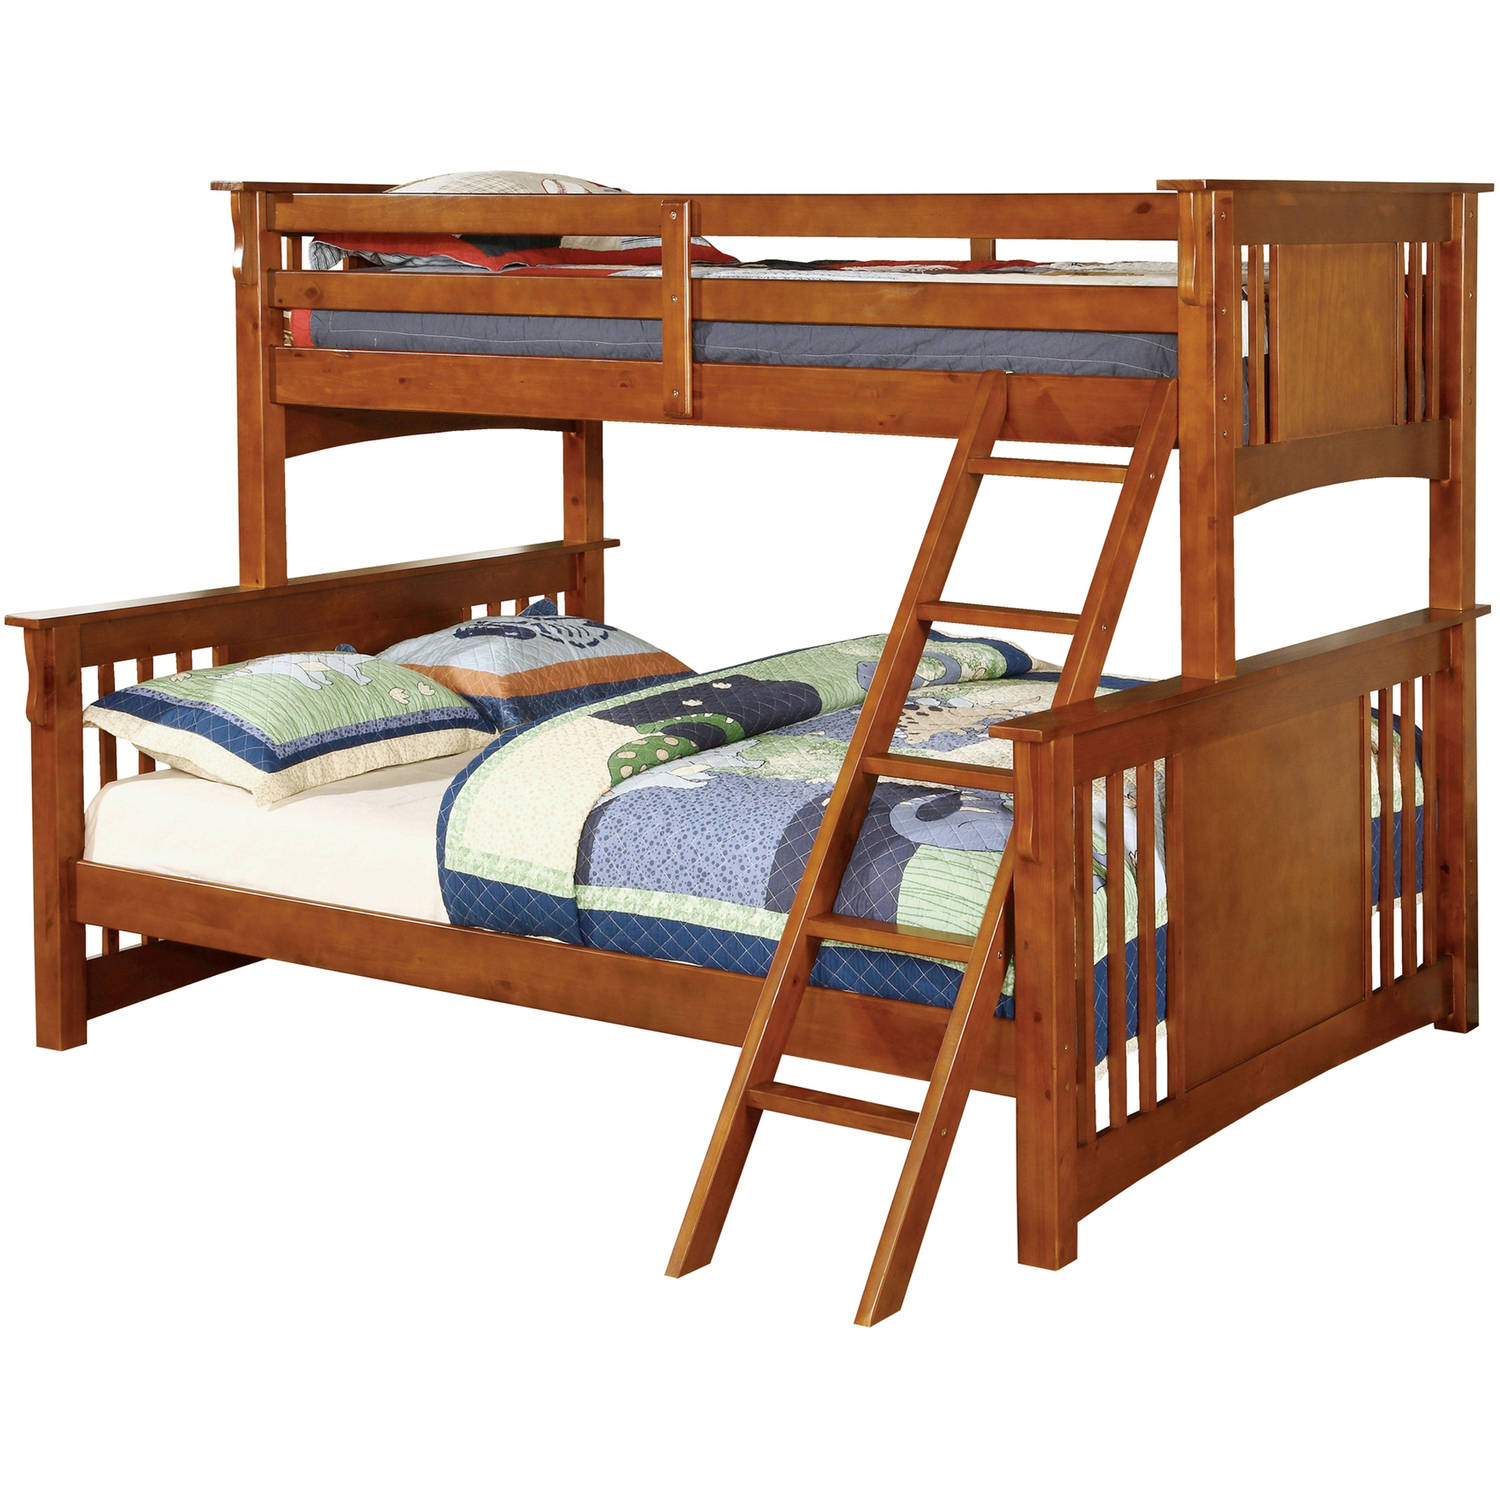 Furniture of America Harlow Twin XL Over Queen Wood Bunk Bed, Multiple Colors